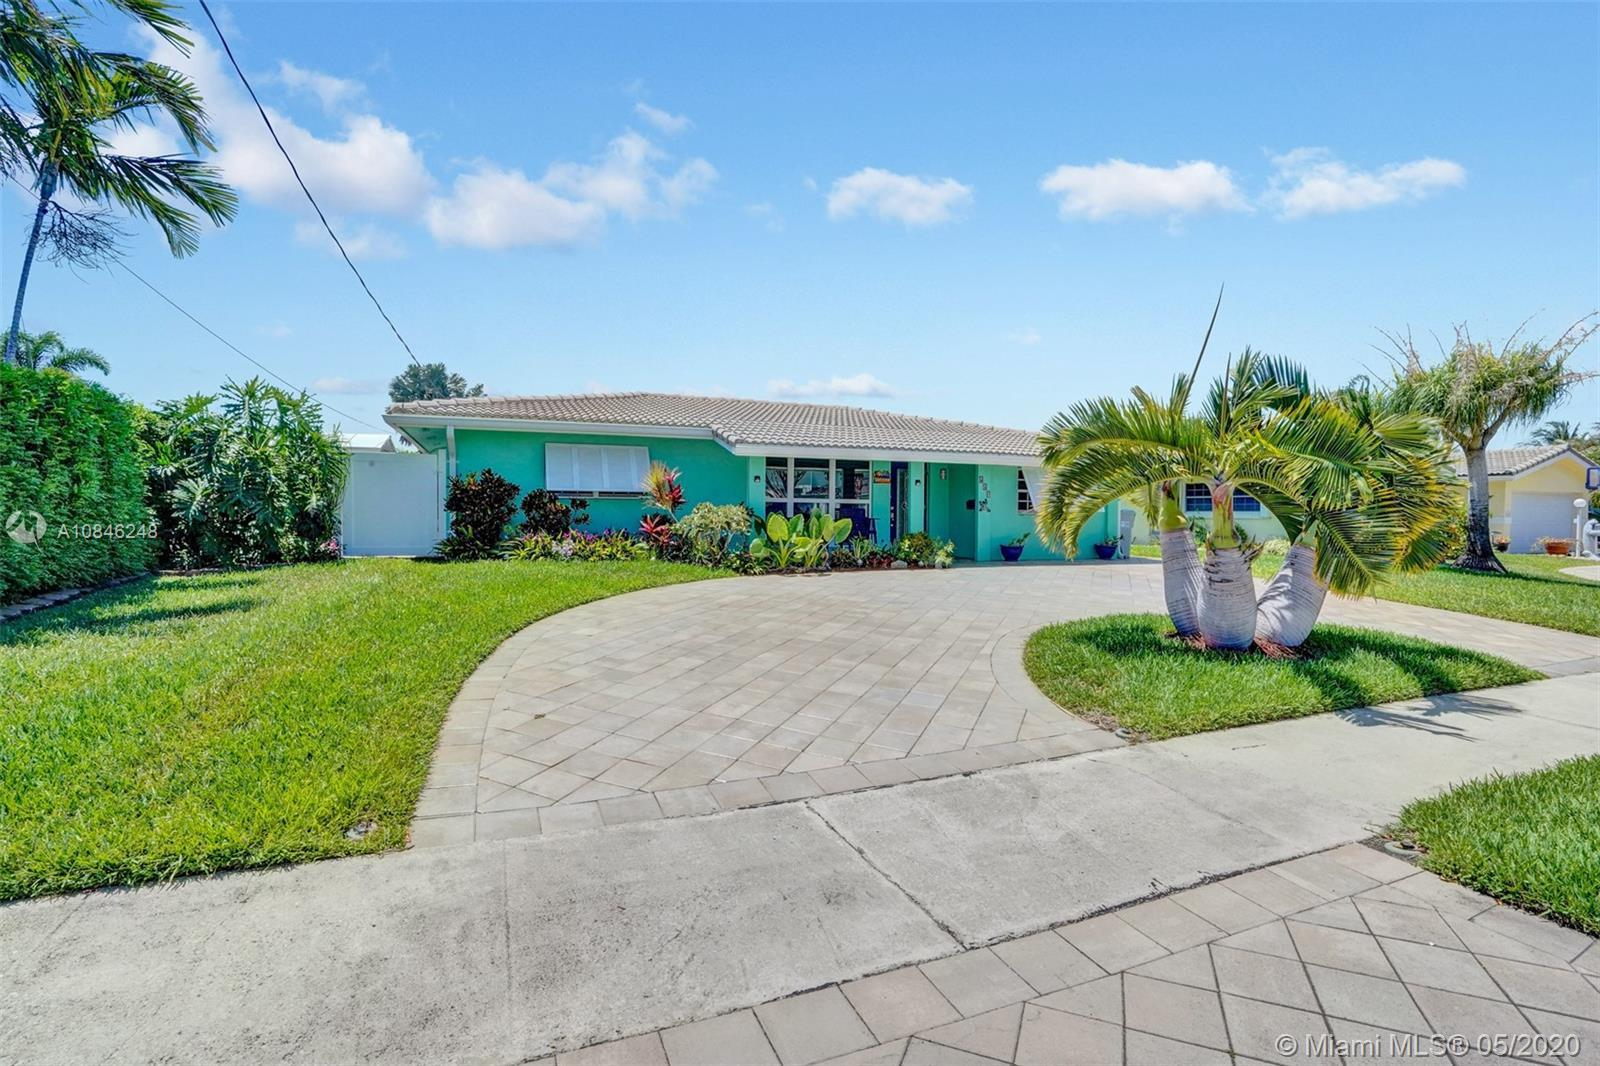 Boaters Dream!! This is the Deal!! Beautiful 3/2 home tucked away comfortably in Garden Isles on a q